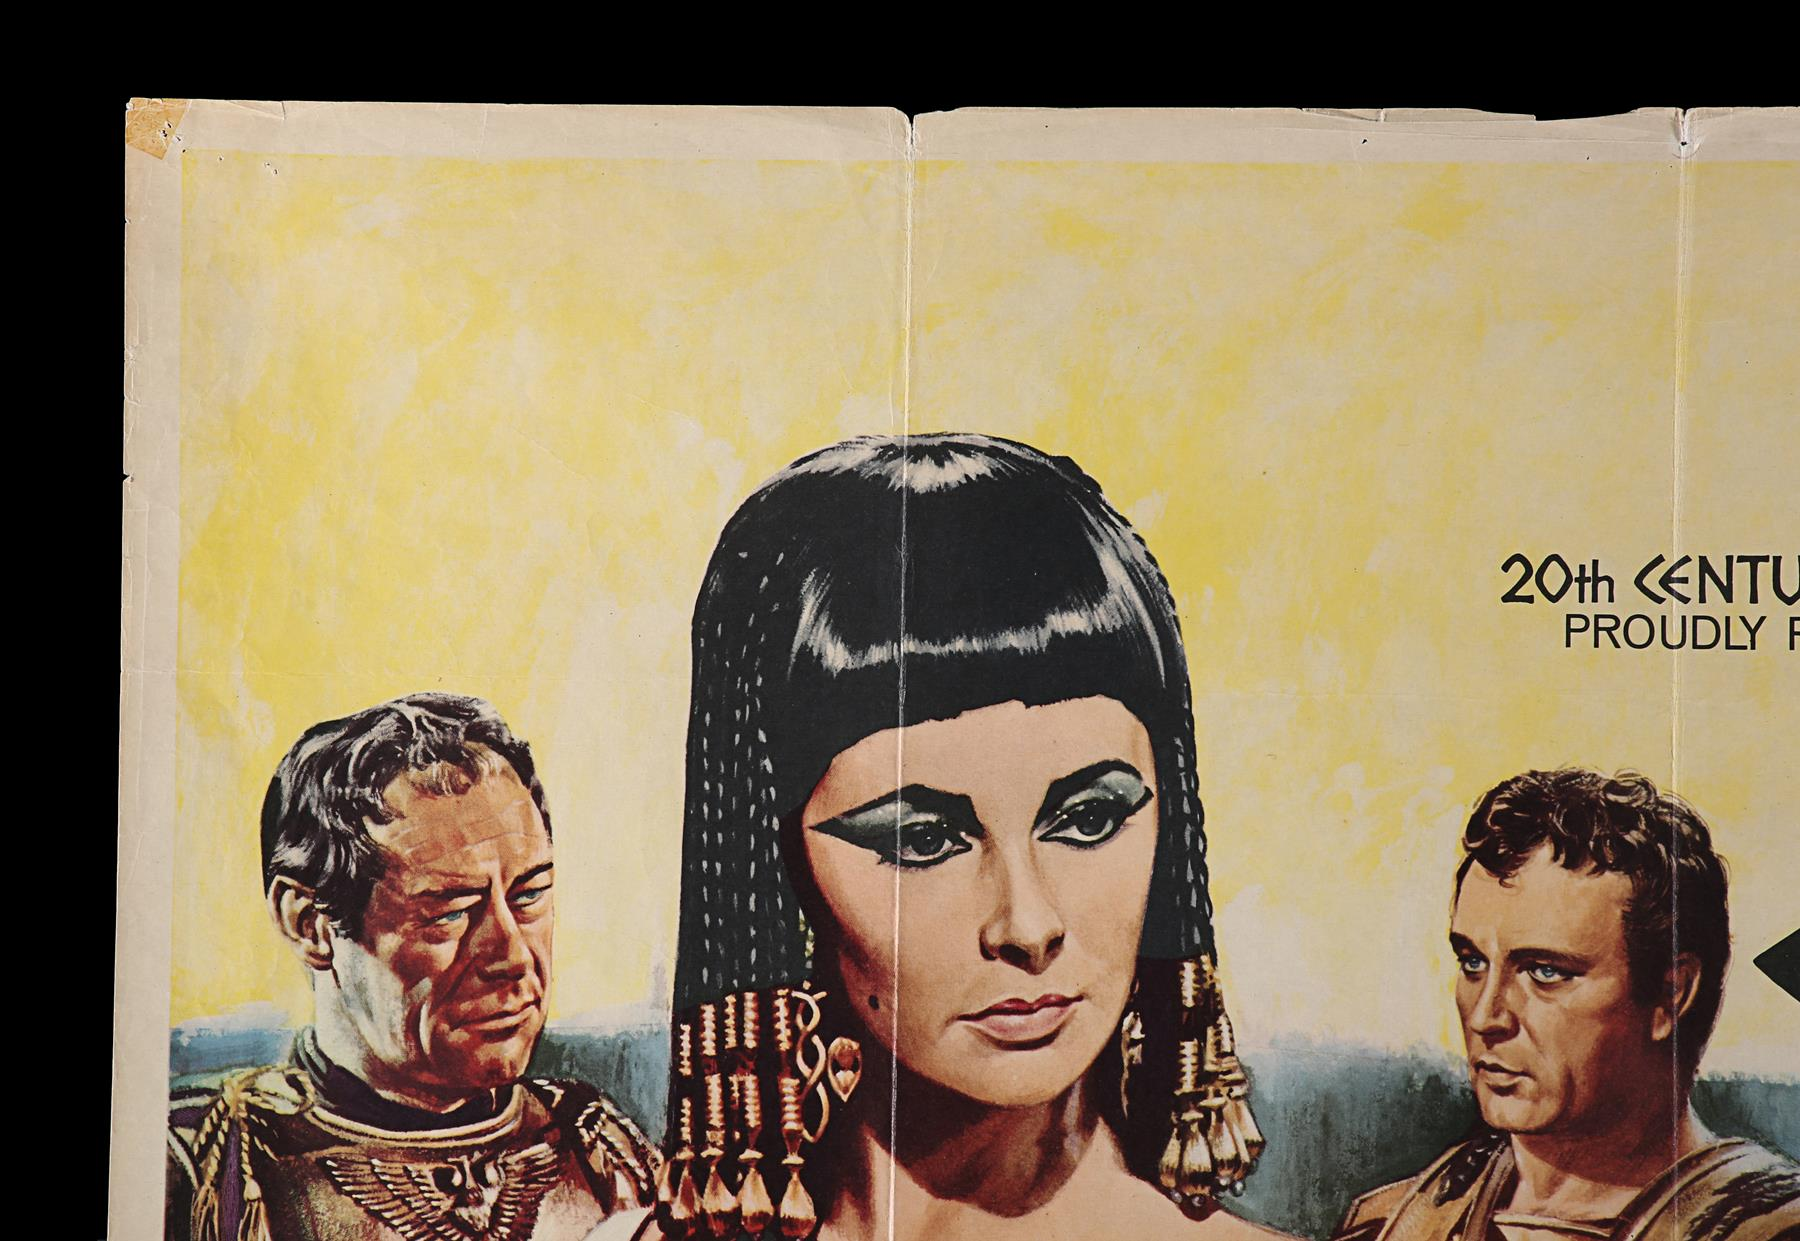 CLEOPATRA (1963) - UK Quad and Exhibitors Campaign Book, 1963 - Image 3 of 7